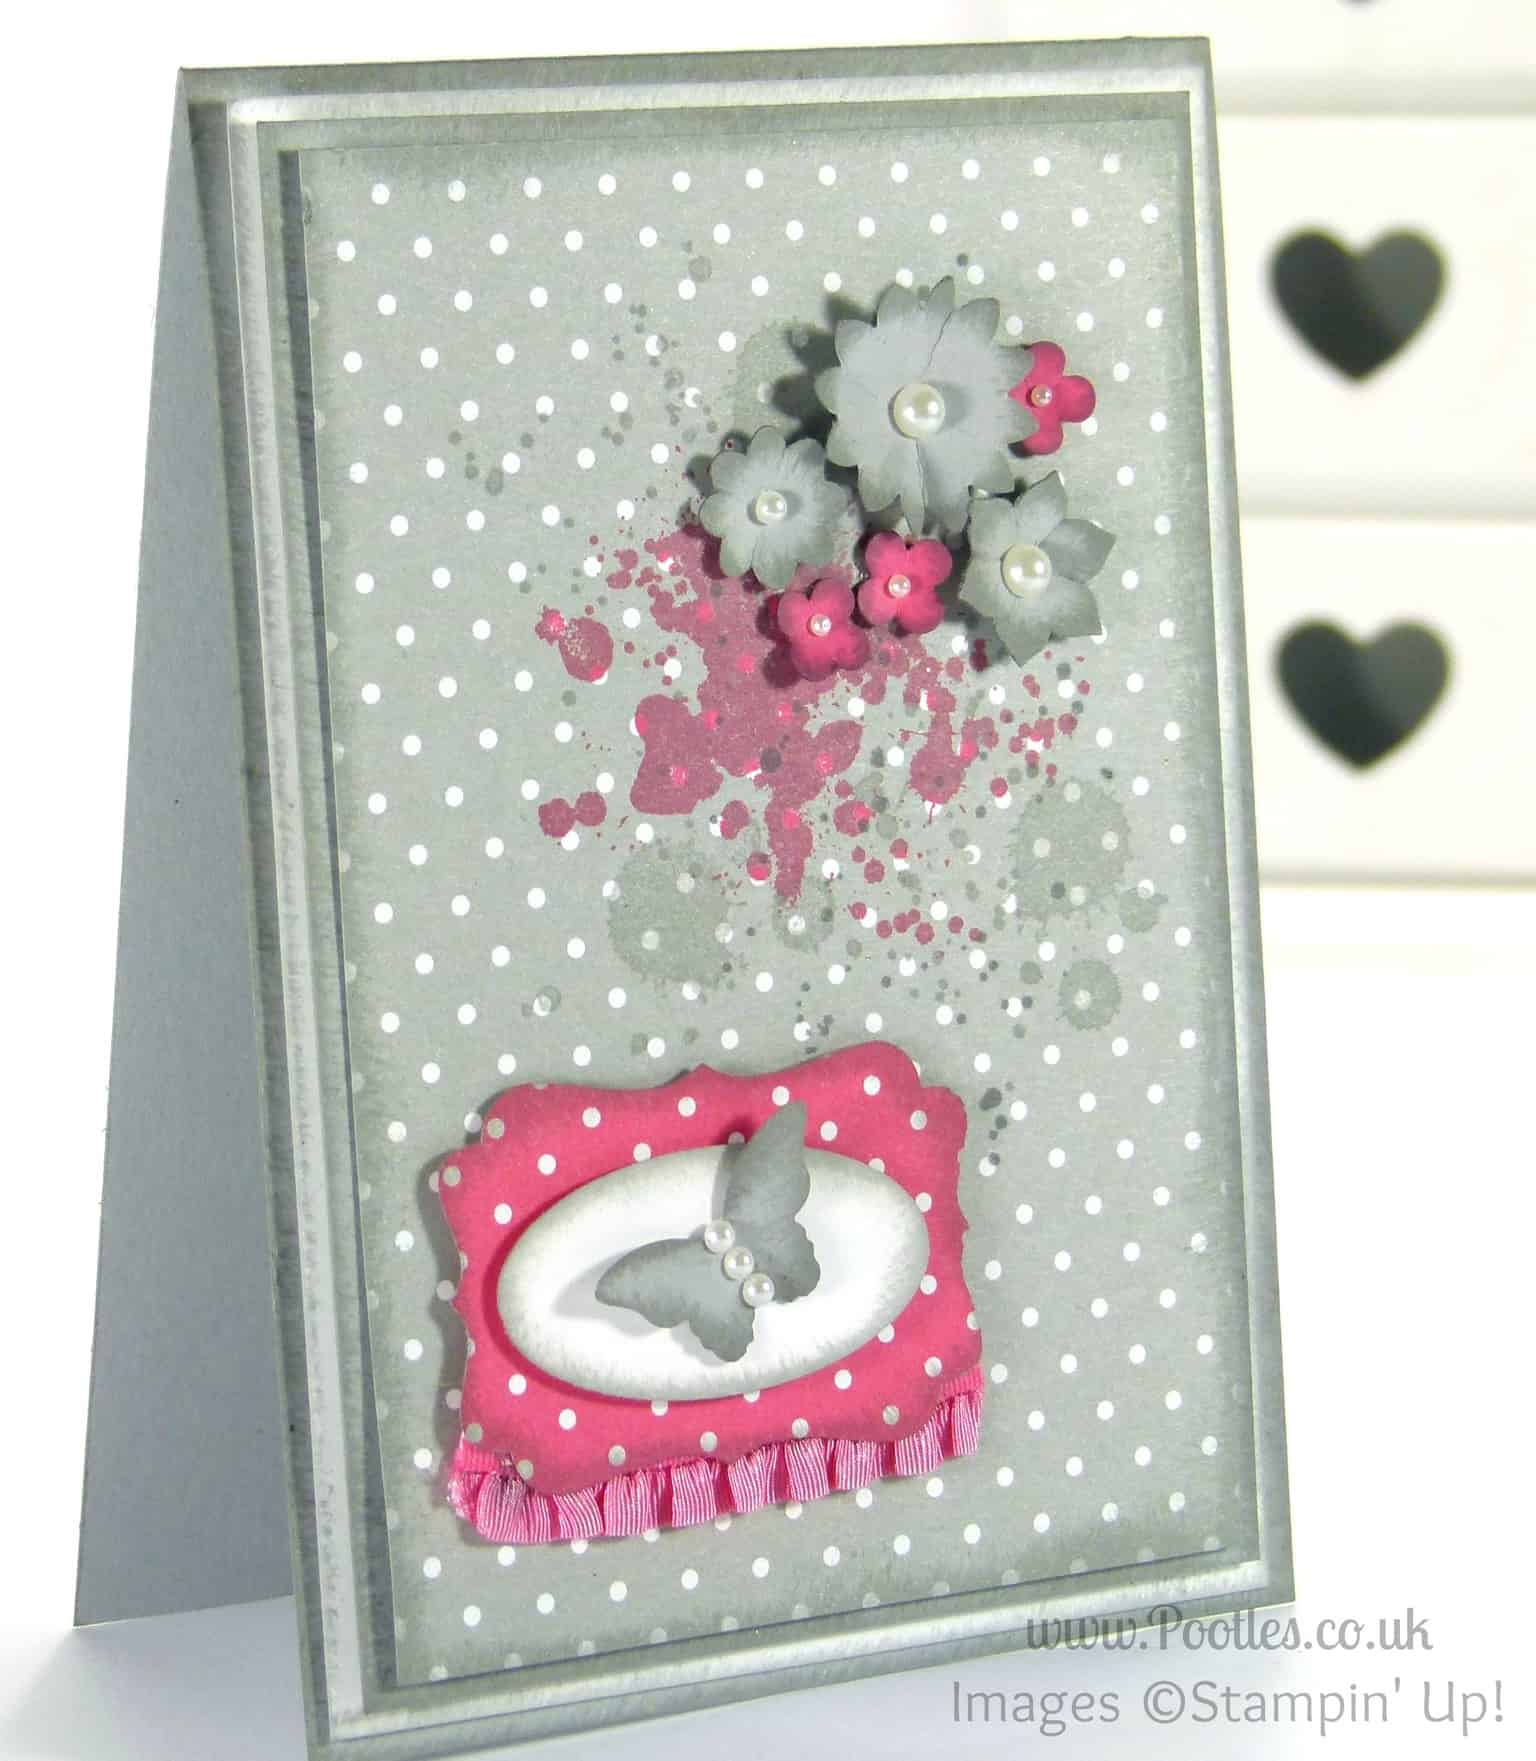 Stampin' Up! UK Independent Demonstrator - Pootles. Smokey Slush with a Splash of Butterfly!